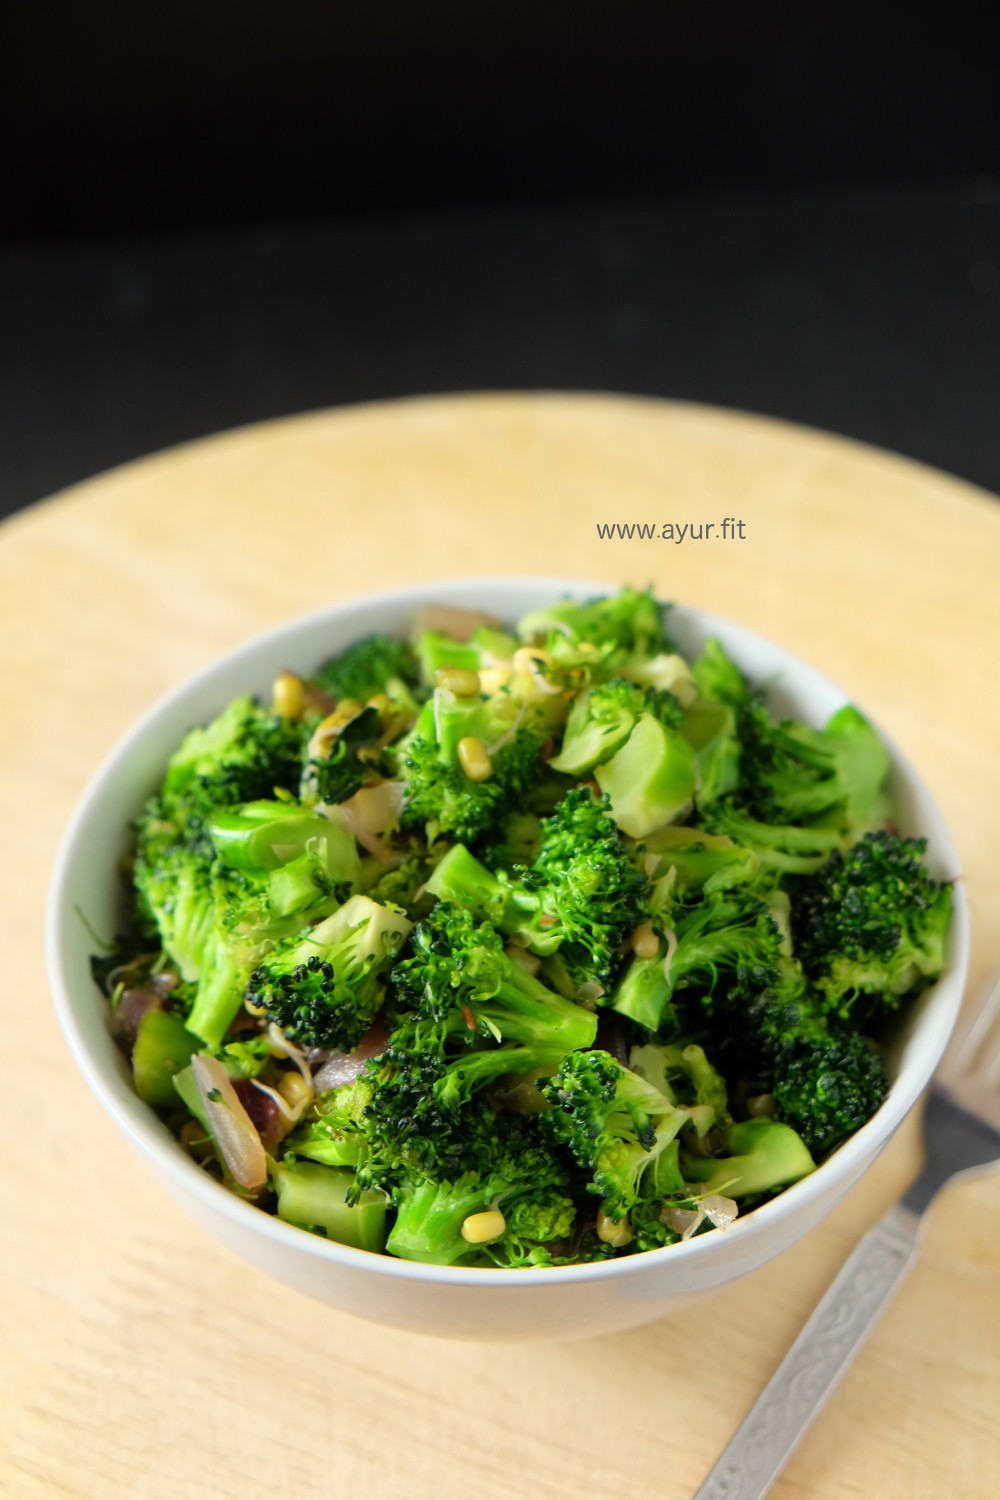 10 Minute Broccoli and Sprouts Stir Fry, Kerala Style